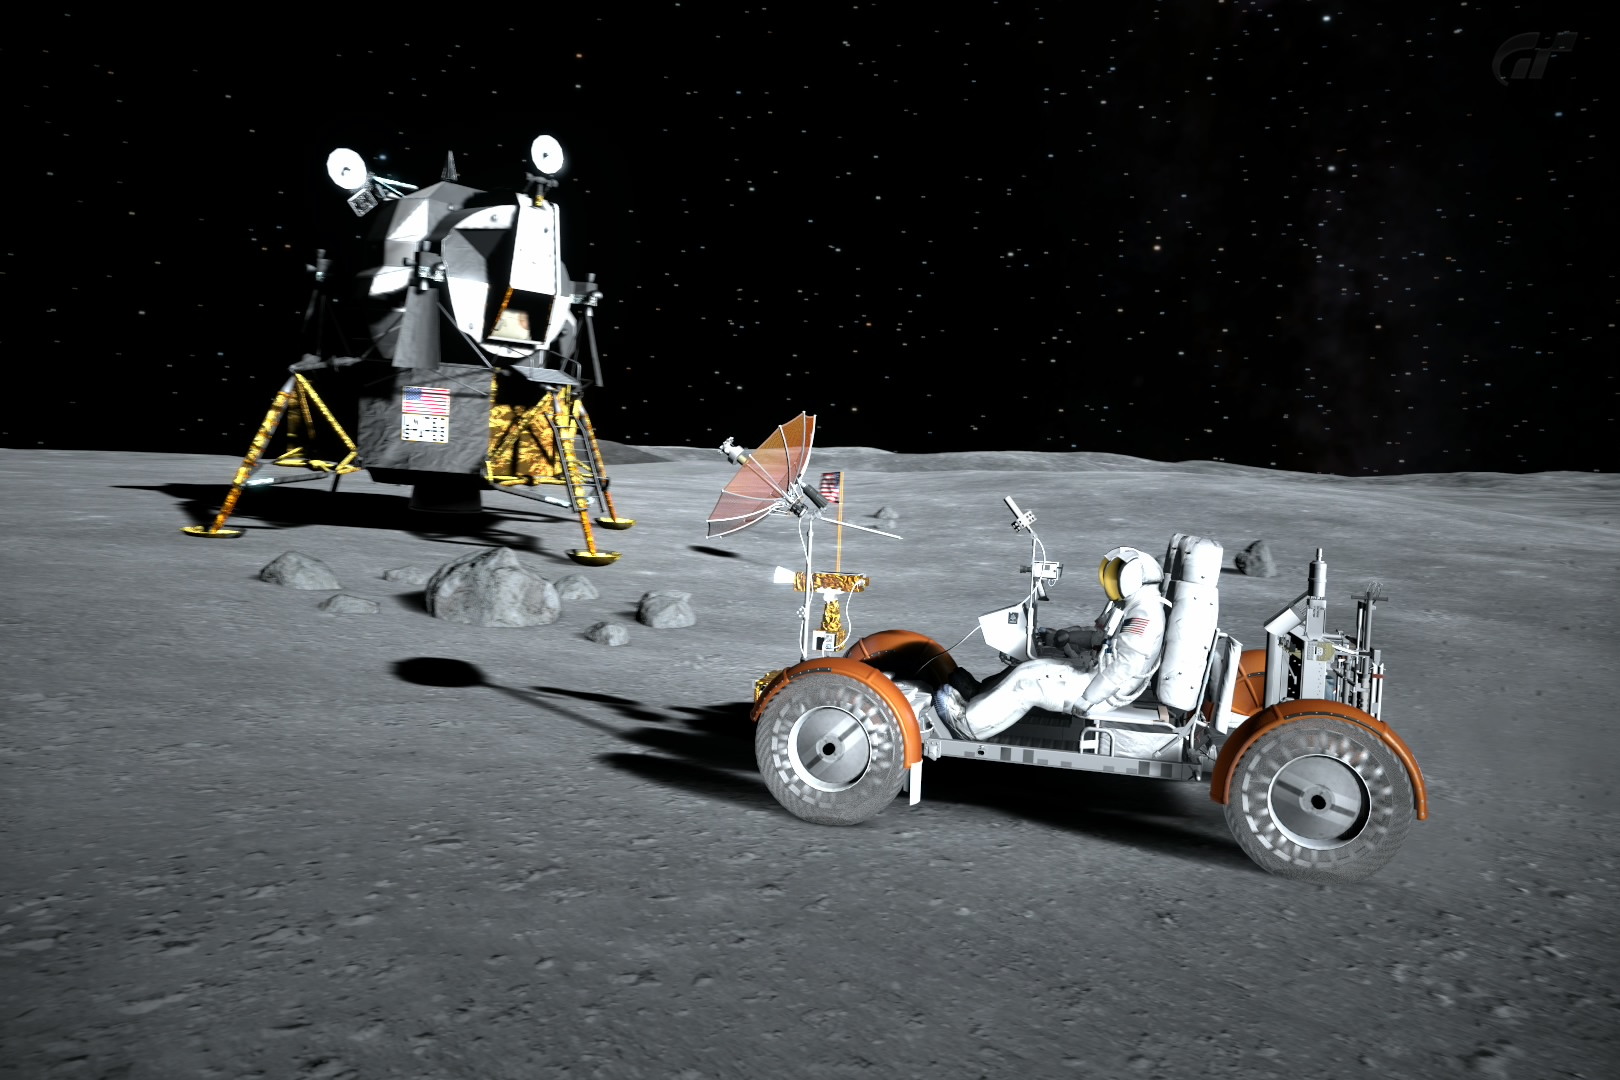 moon rover images - photo #11